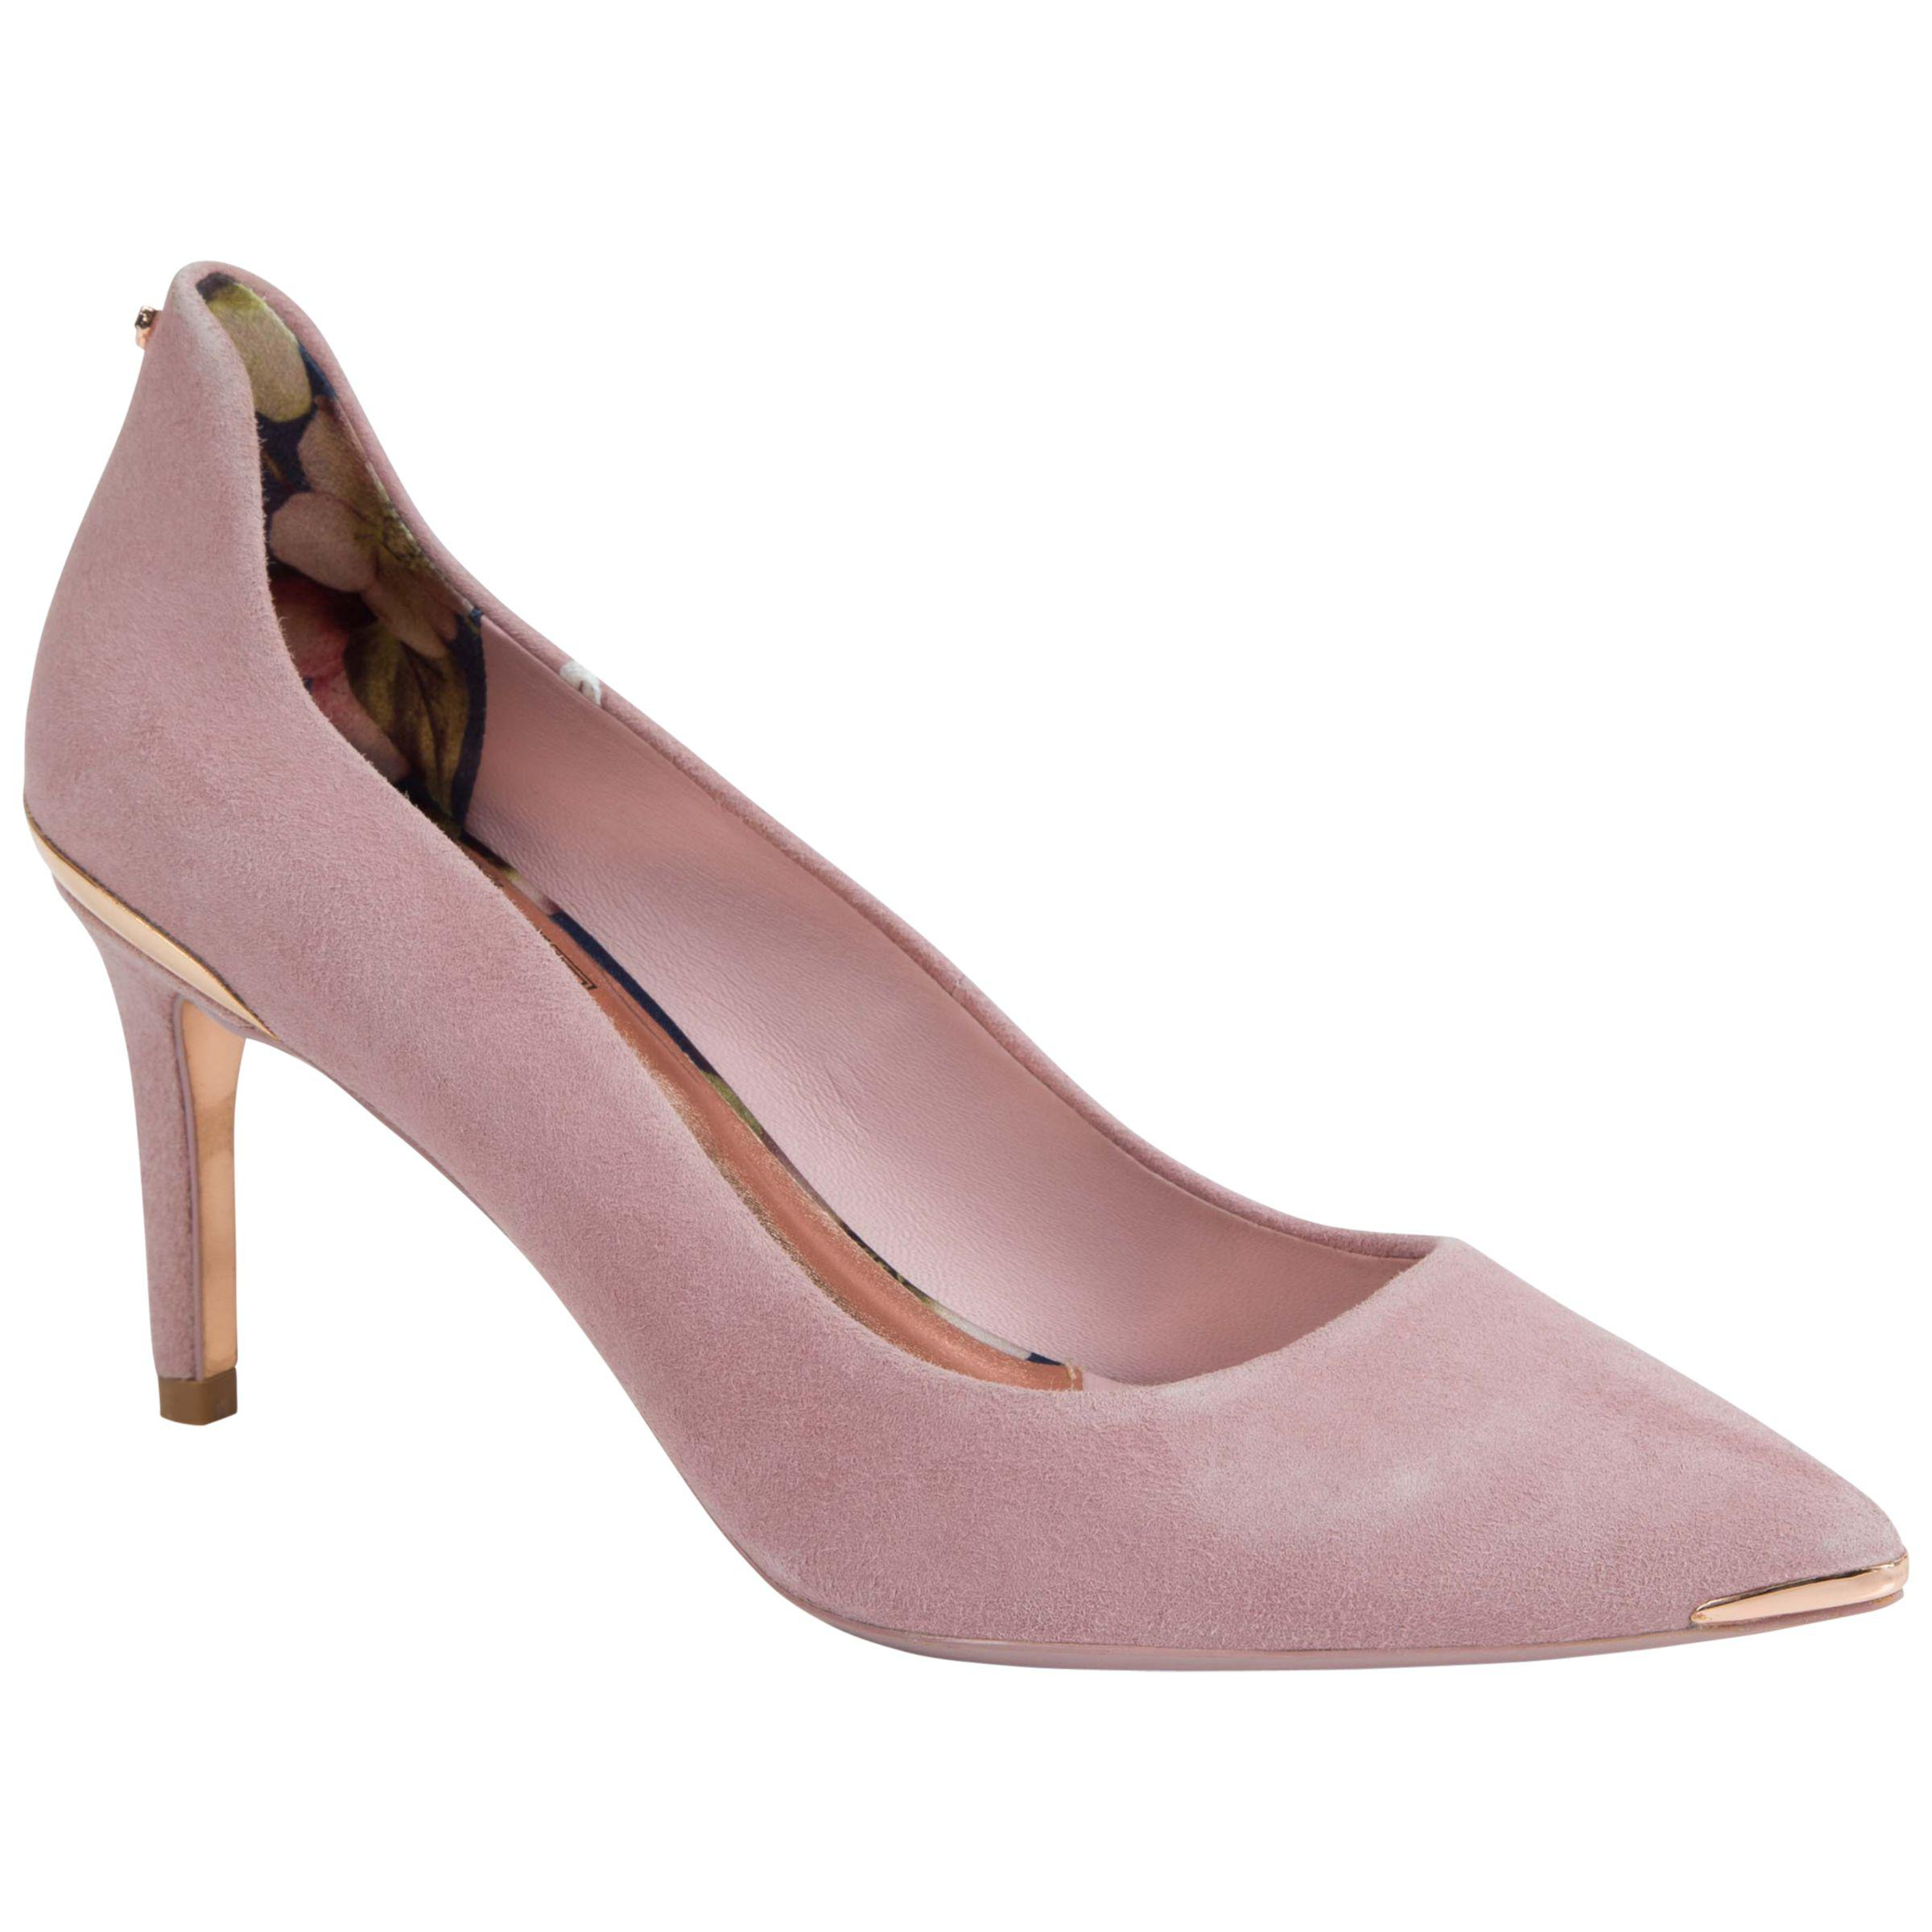 ff572ac29f5 Ted Baker Vyixyns Suede Court Shoes in Pink - Lyst